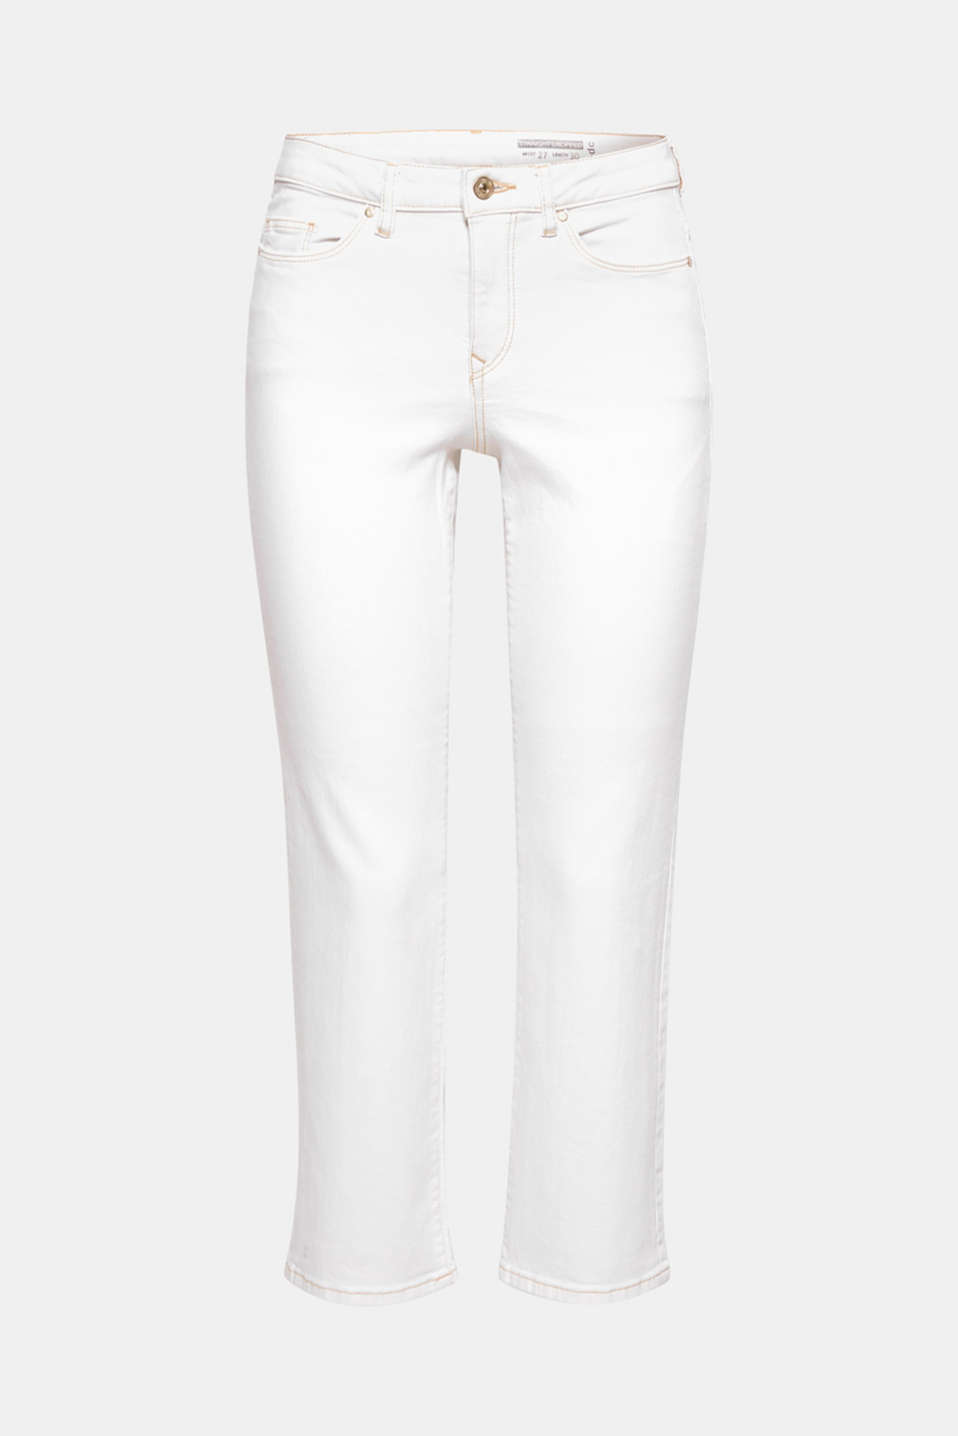 They conjure up a fresh new look whilst being mega comfy at the same time: these extremely stretchy white jeans with beige contrasting stitching.